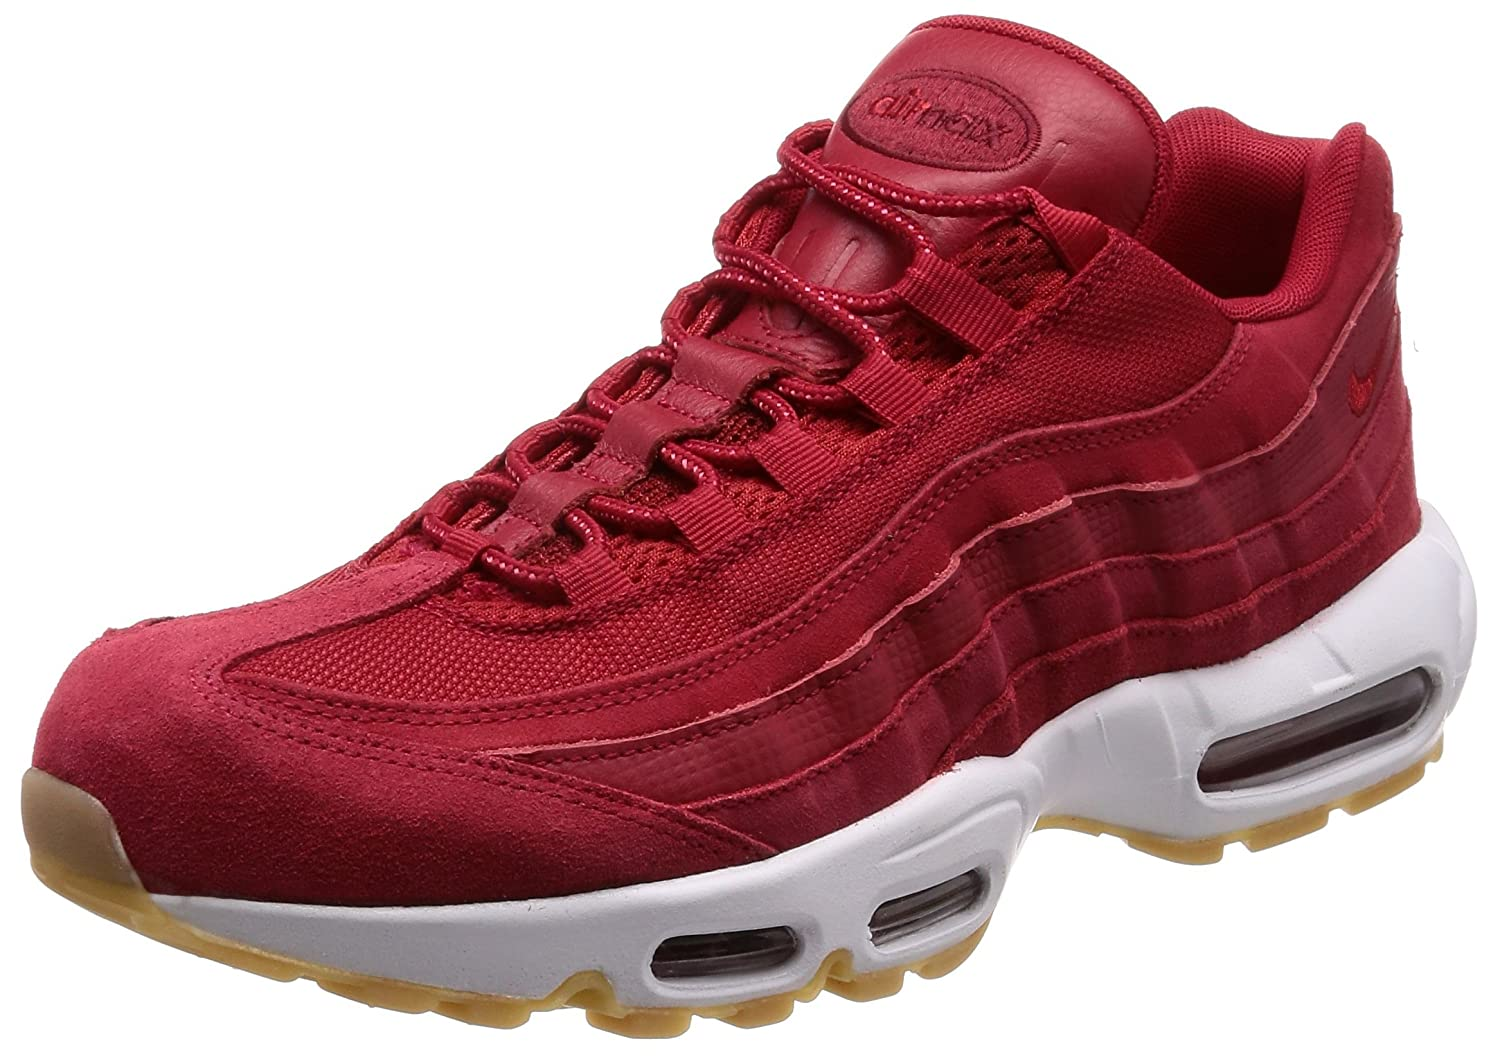 brand new 1694f a9d0f Nike Men's Air Max 95 Premium Sneaker Gym Red/Team Red/White ...